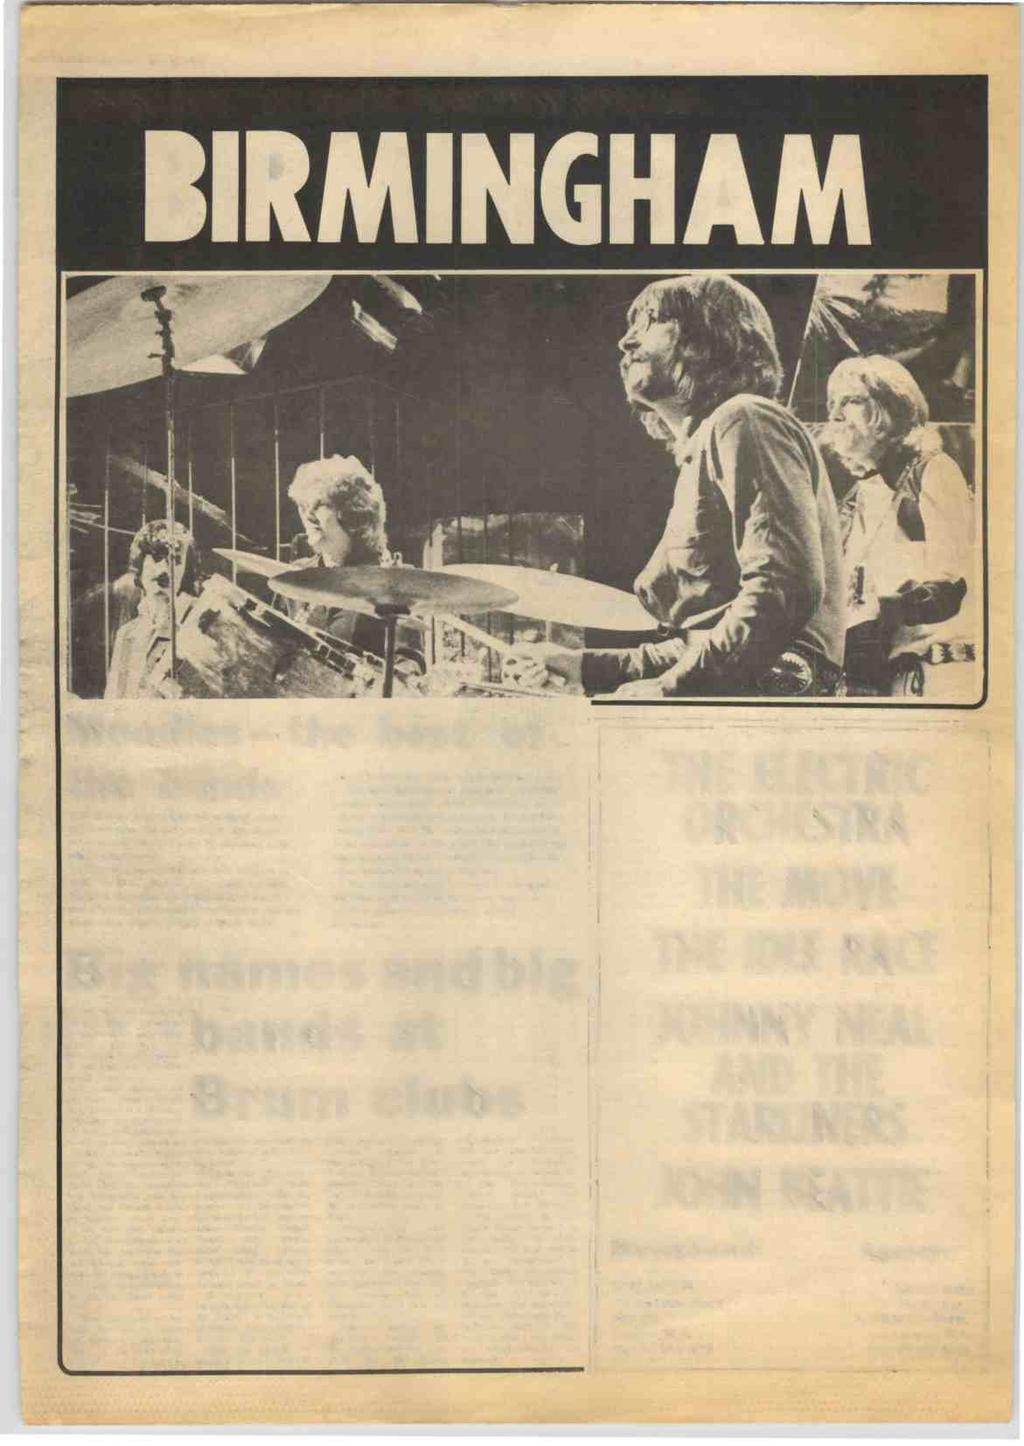 RECORD MIRROR, May 15, 1971 11 SPOTLIGHT ON YOUR TOWN RM SPECIAL BIRMINGHAM Moodies the best of the bands THE Moody Blues (right) are without doubt the most powerful and musically significant band to